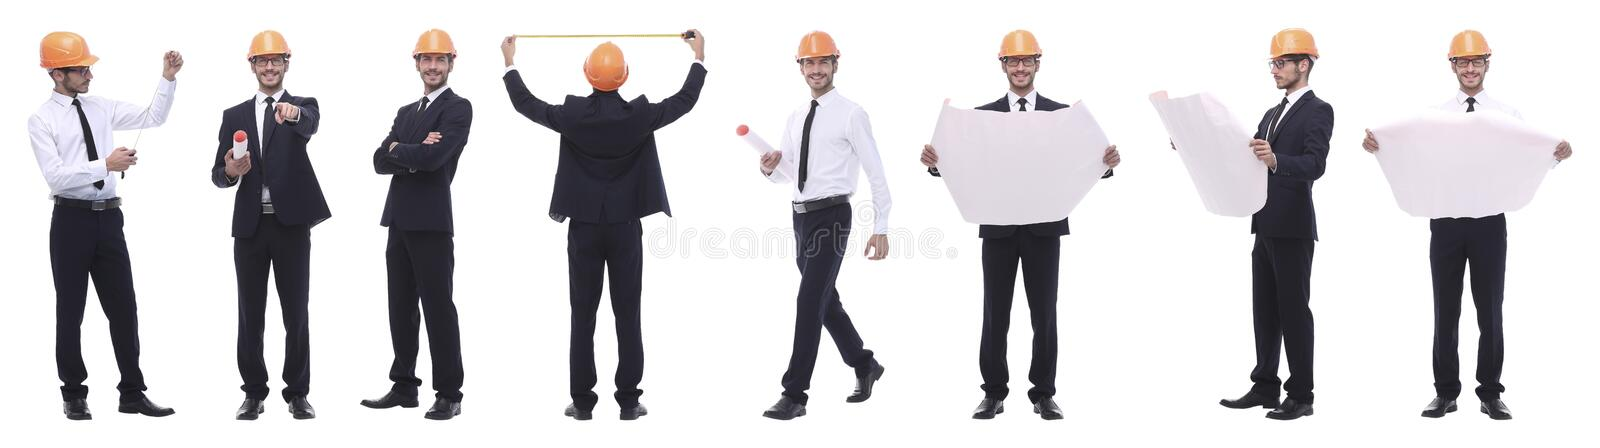 Panoramic photo collage of architect expert isolated on white royalty free stock photo